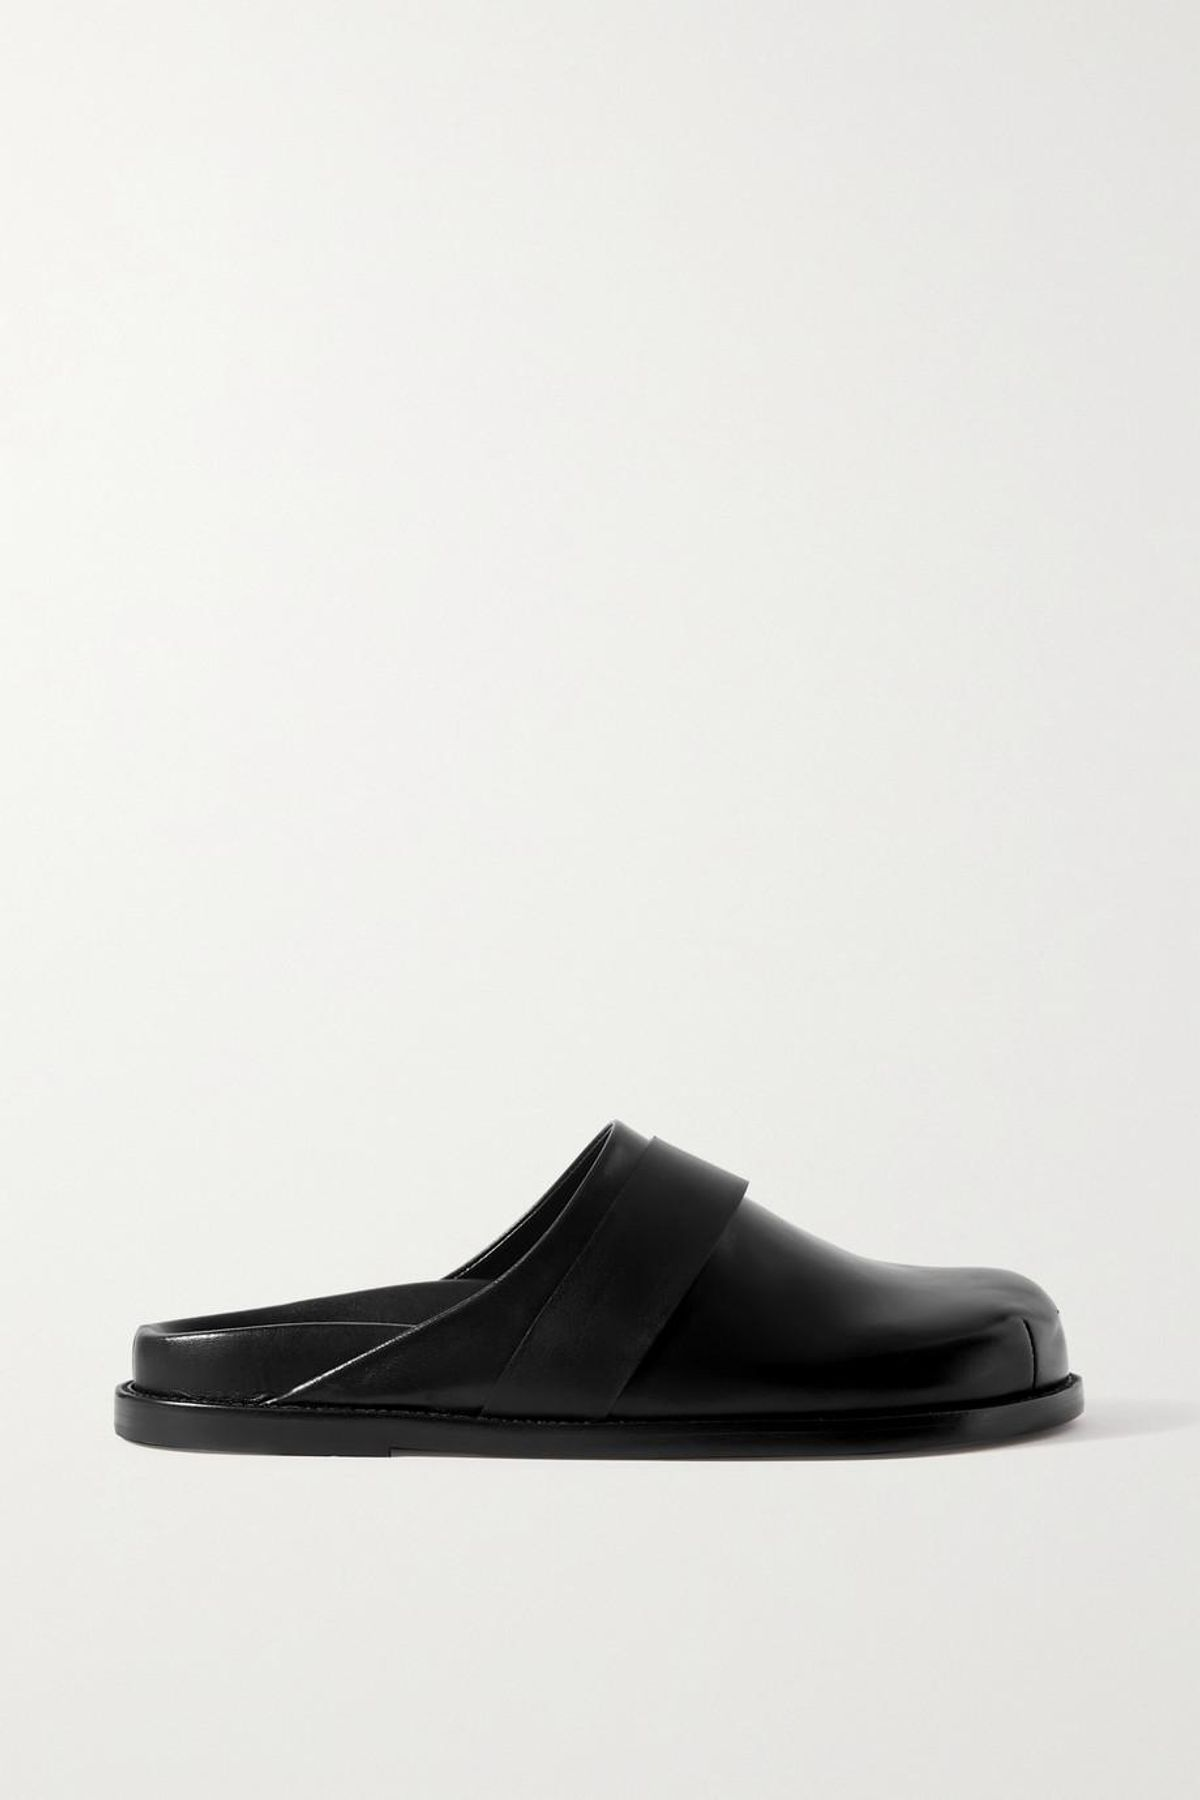 + Frankie Shop Leather Slippers